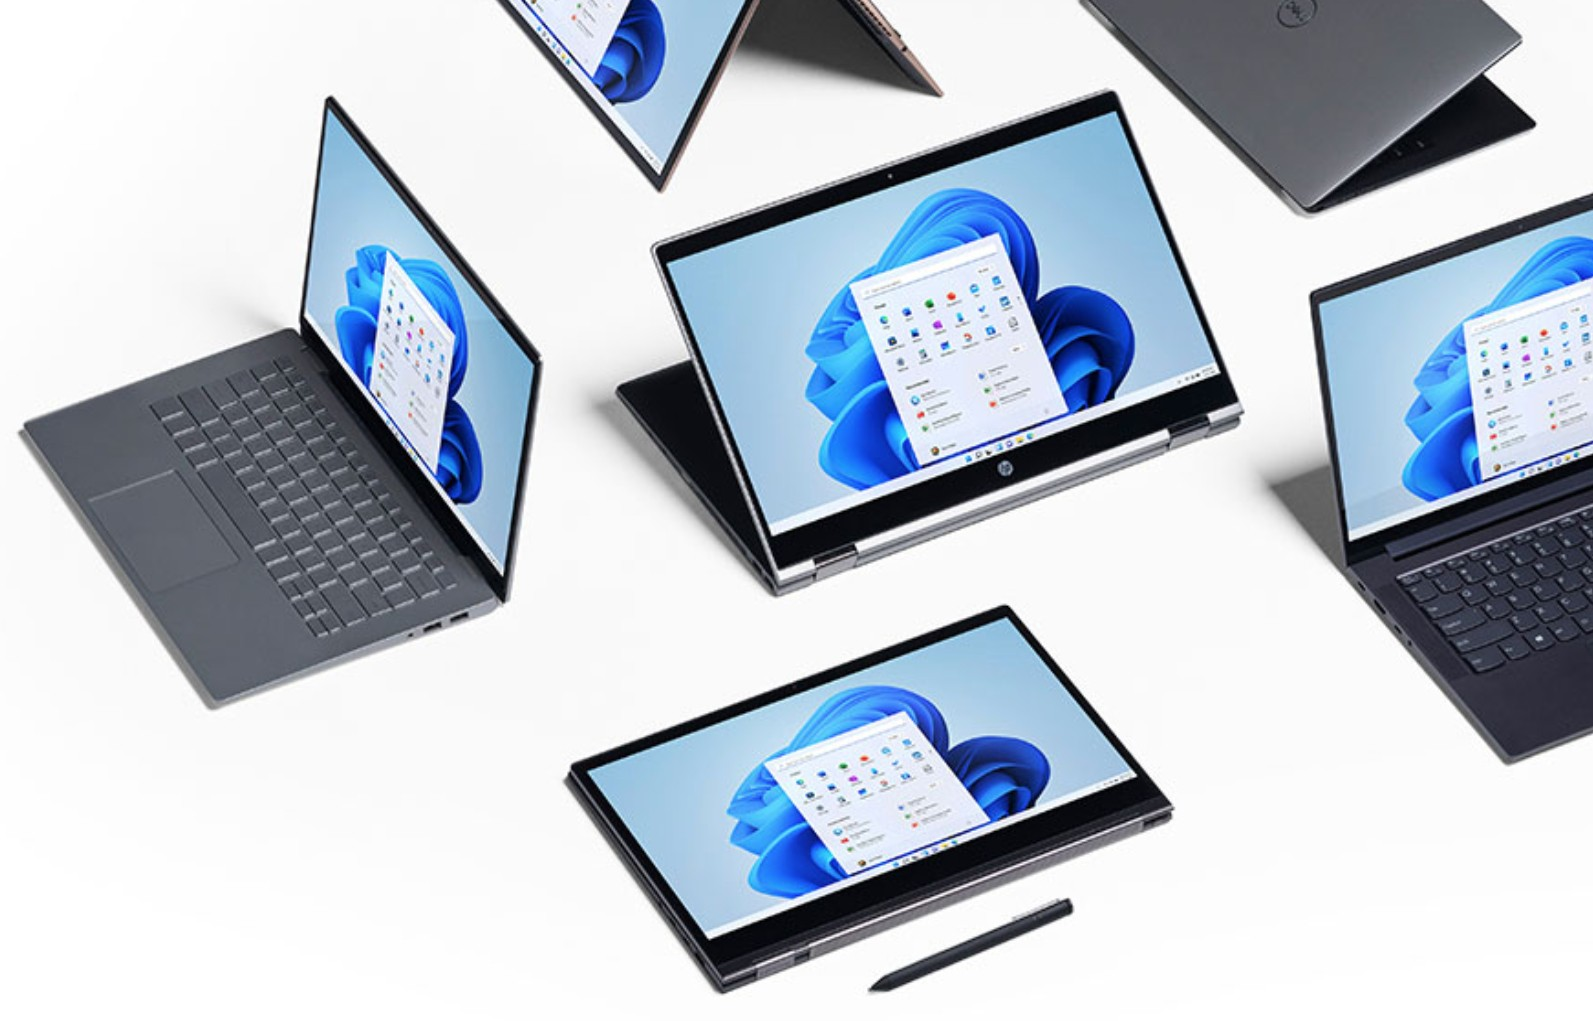 Windows 11 running on many different device types